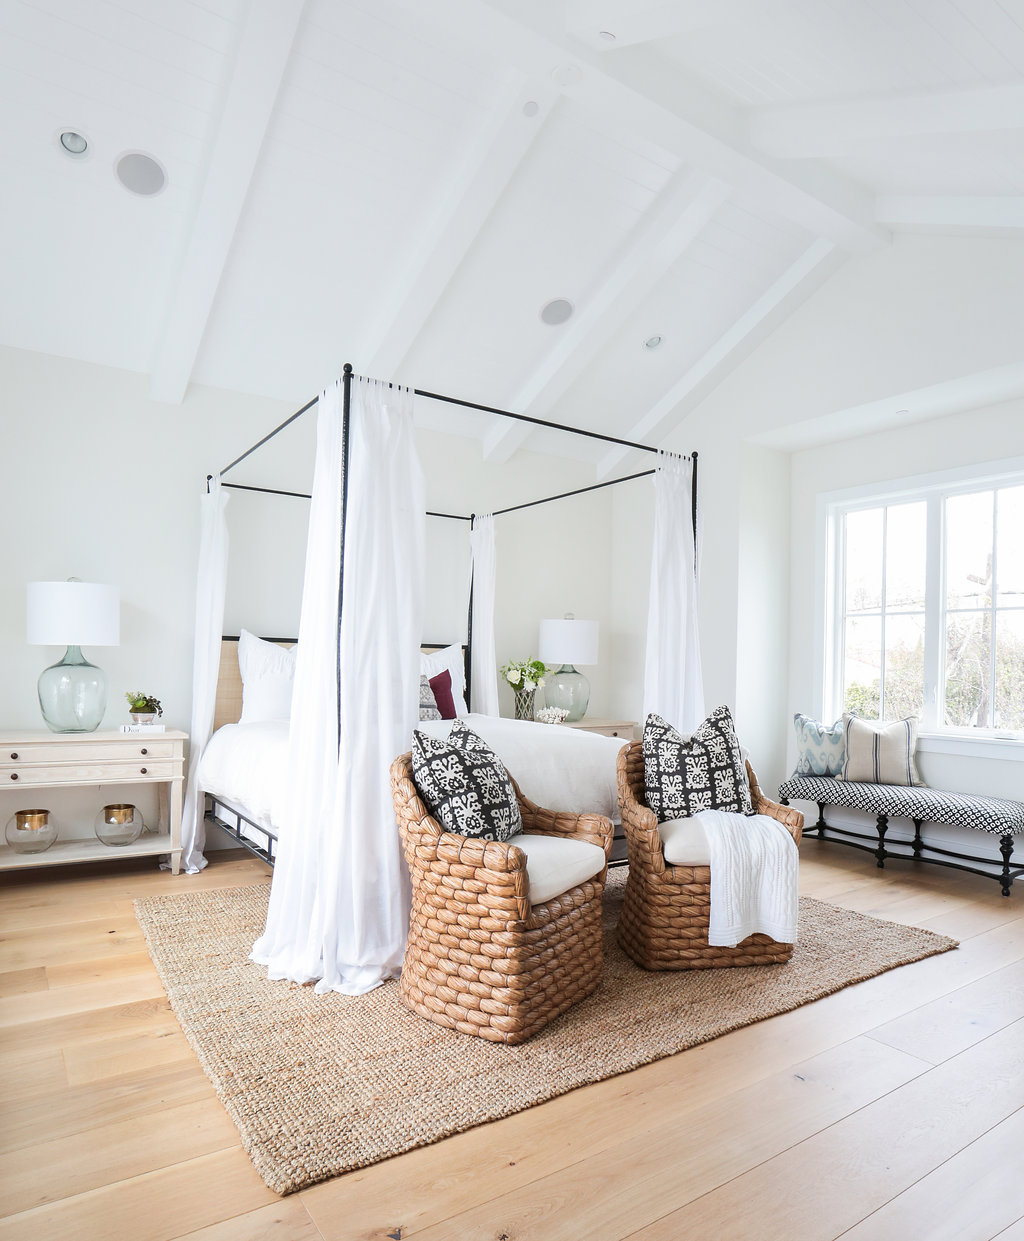 Farmhouse Bedroom: Newport Heights Modern Farmhouse